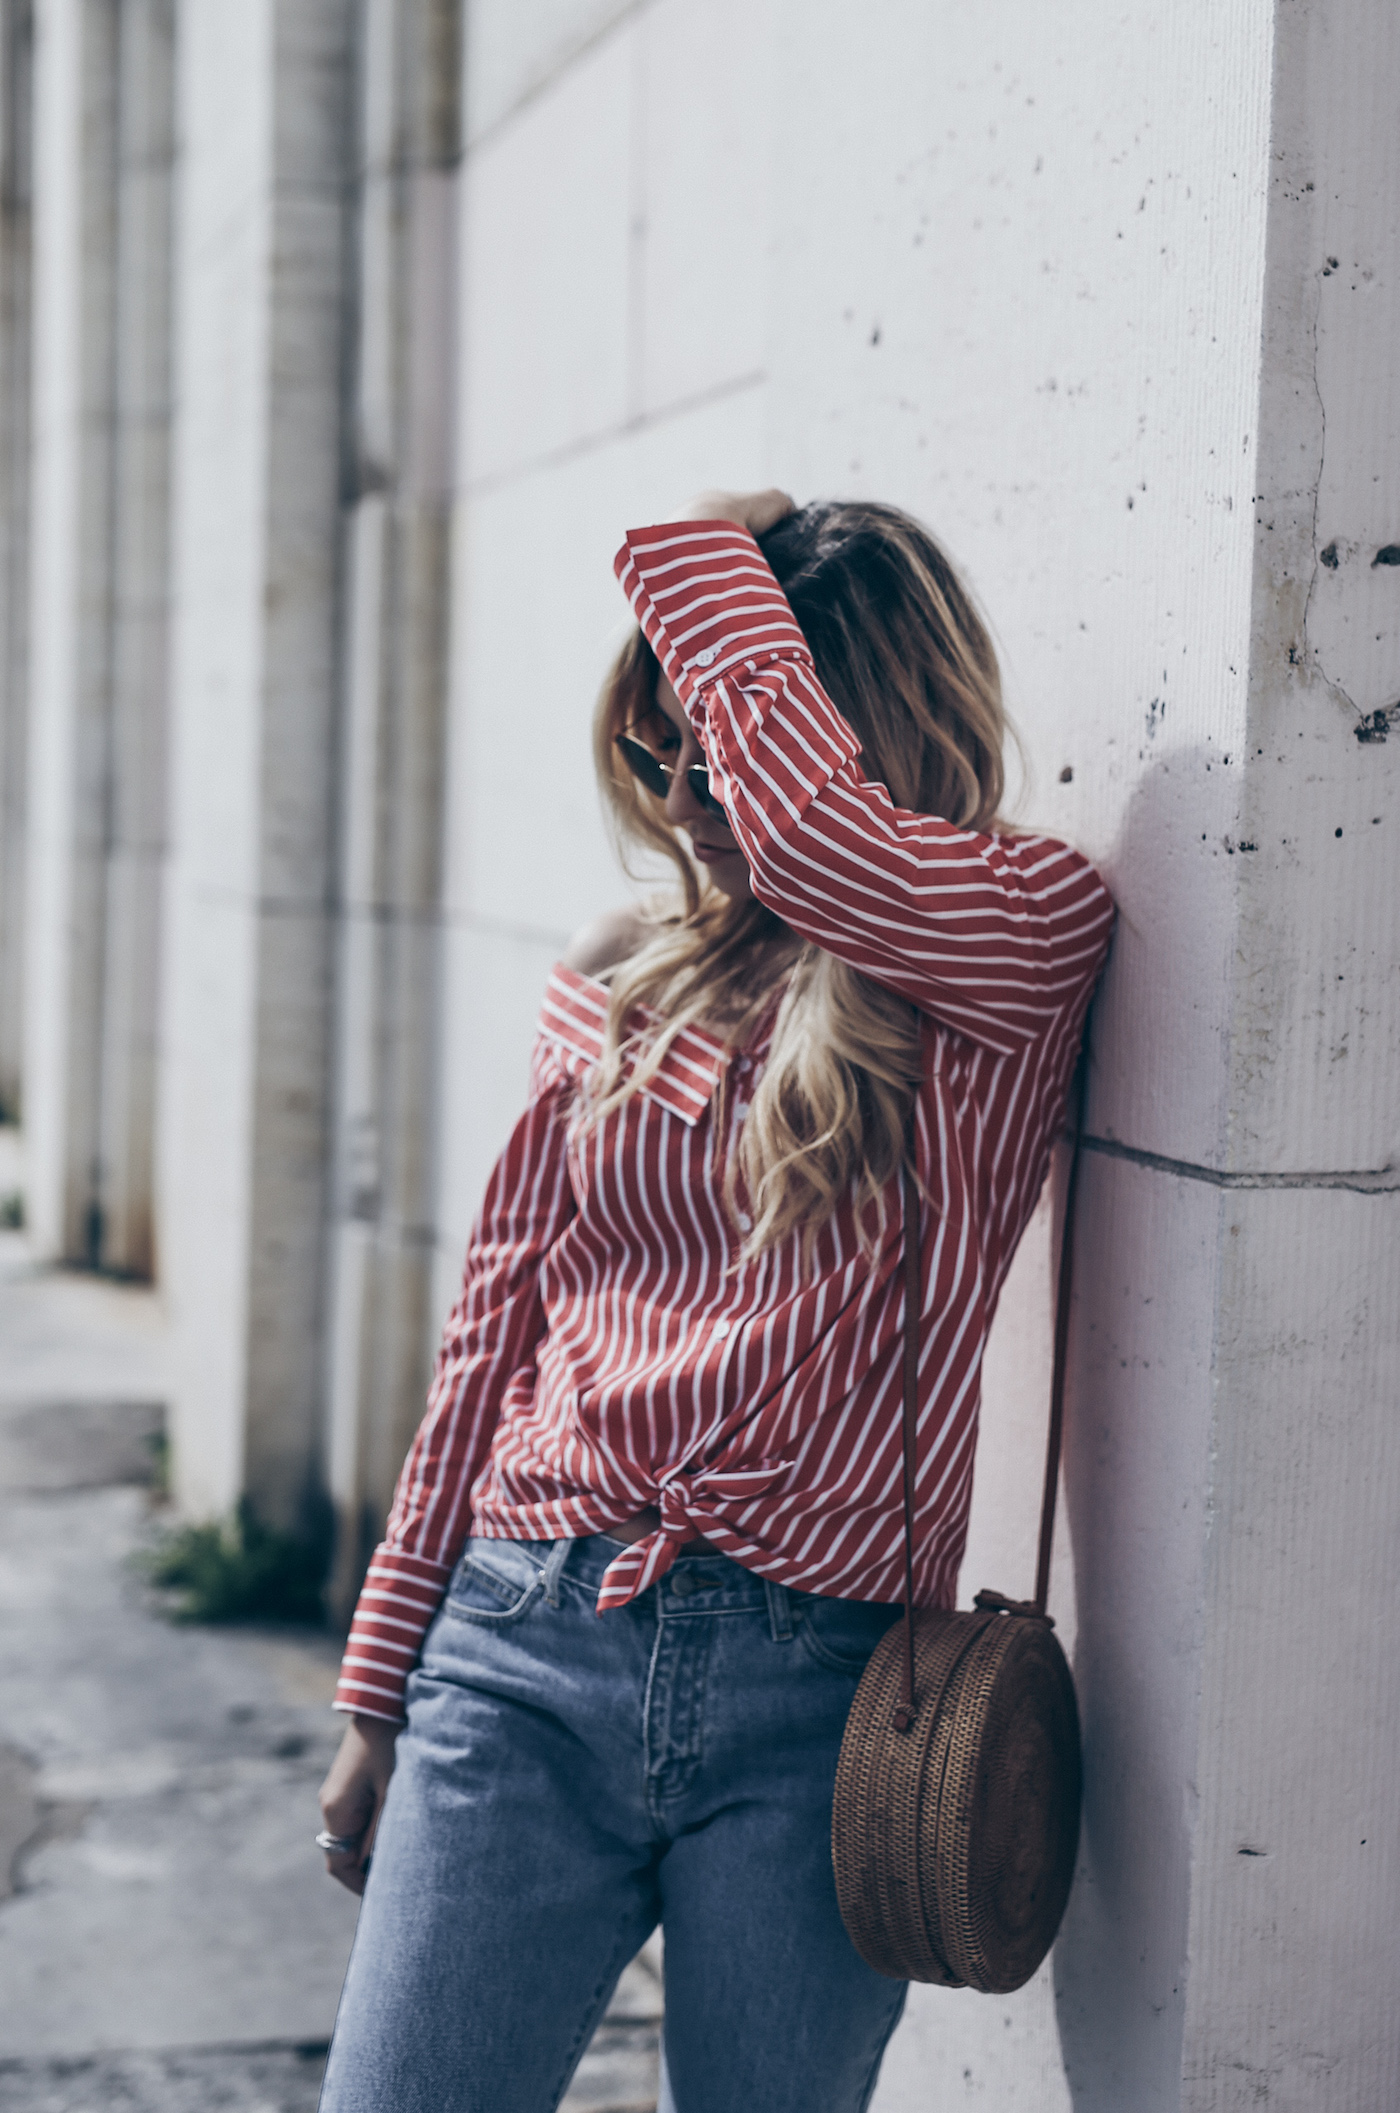 Summer Shirts with a Twist Street Style Outfit | Want Get Repeat Fashion Blog Mode Blog Nürnberg Erlangen